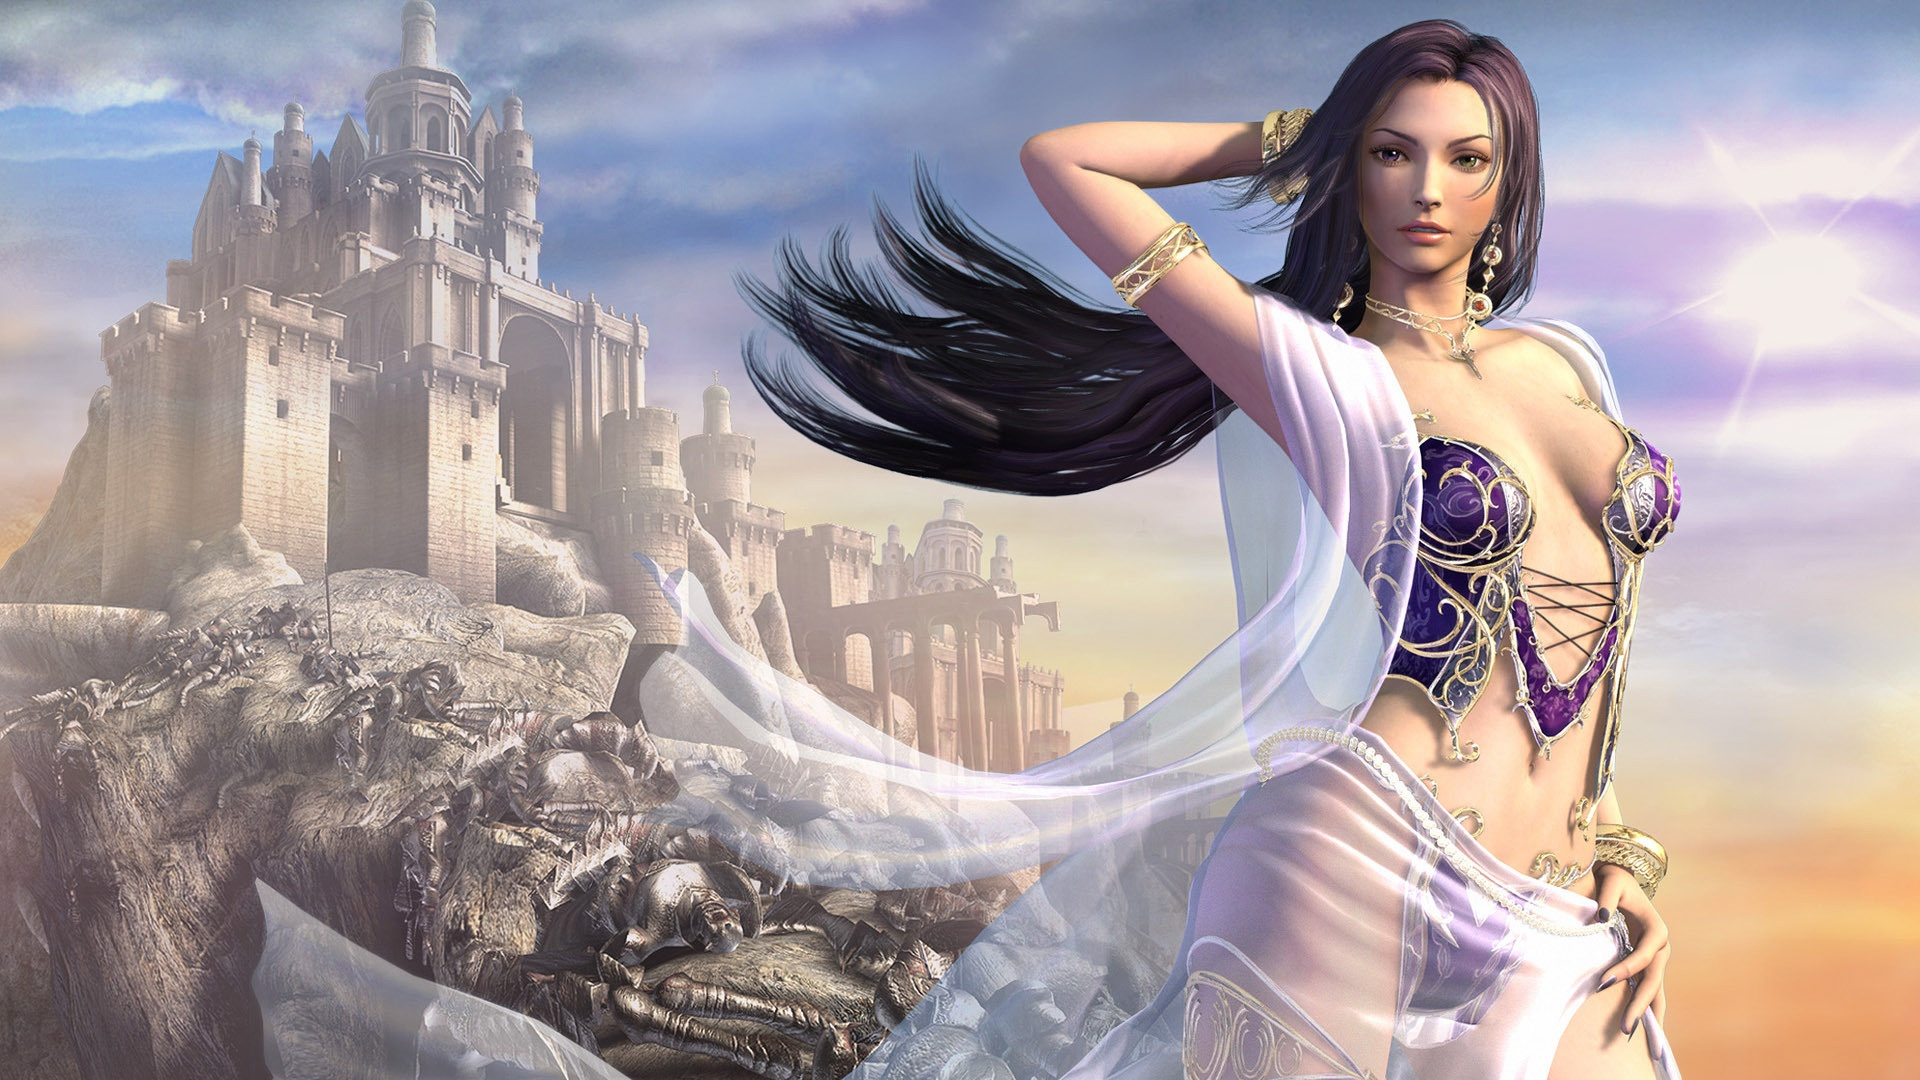 Fantasy Girl HD Wallpapers | WallpapersCharlie